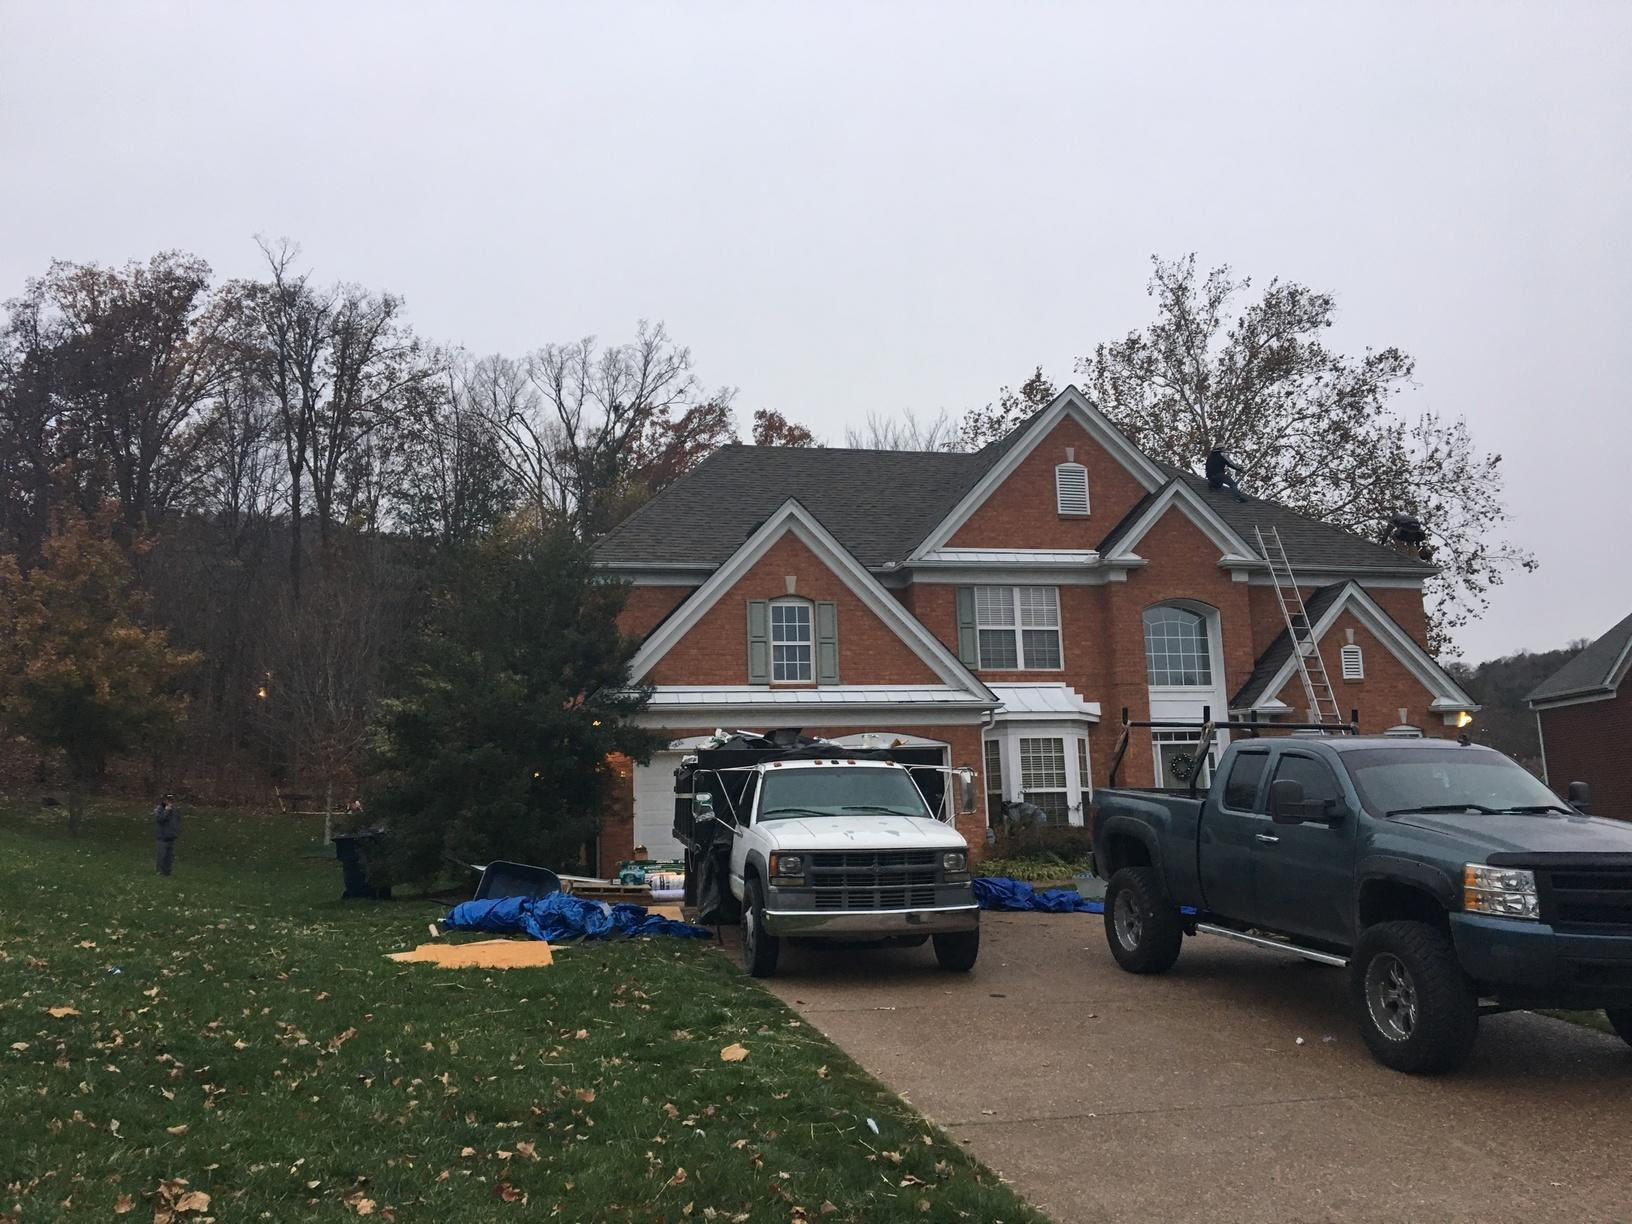 Tree damage leads to Roof and Gutter Replacement, Brentwood - After Photo